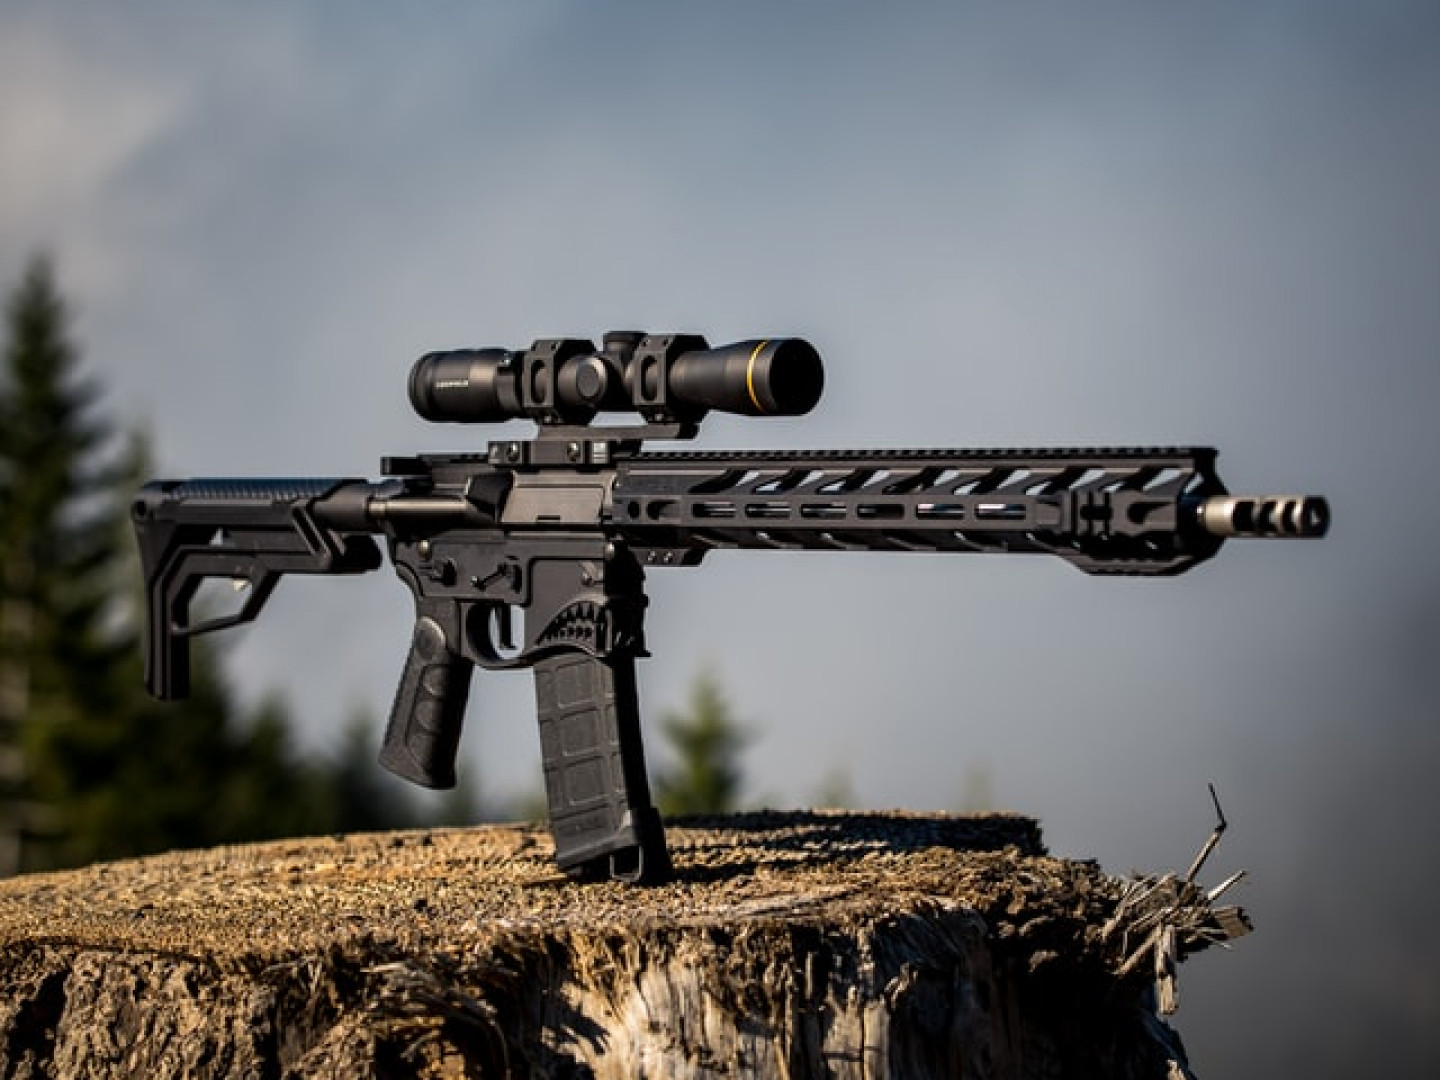 Check out our gun optics and accessories